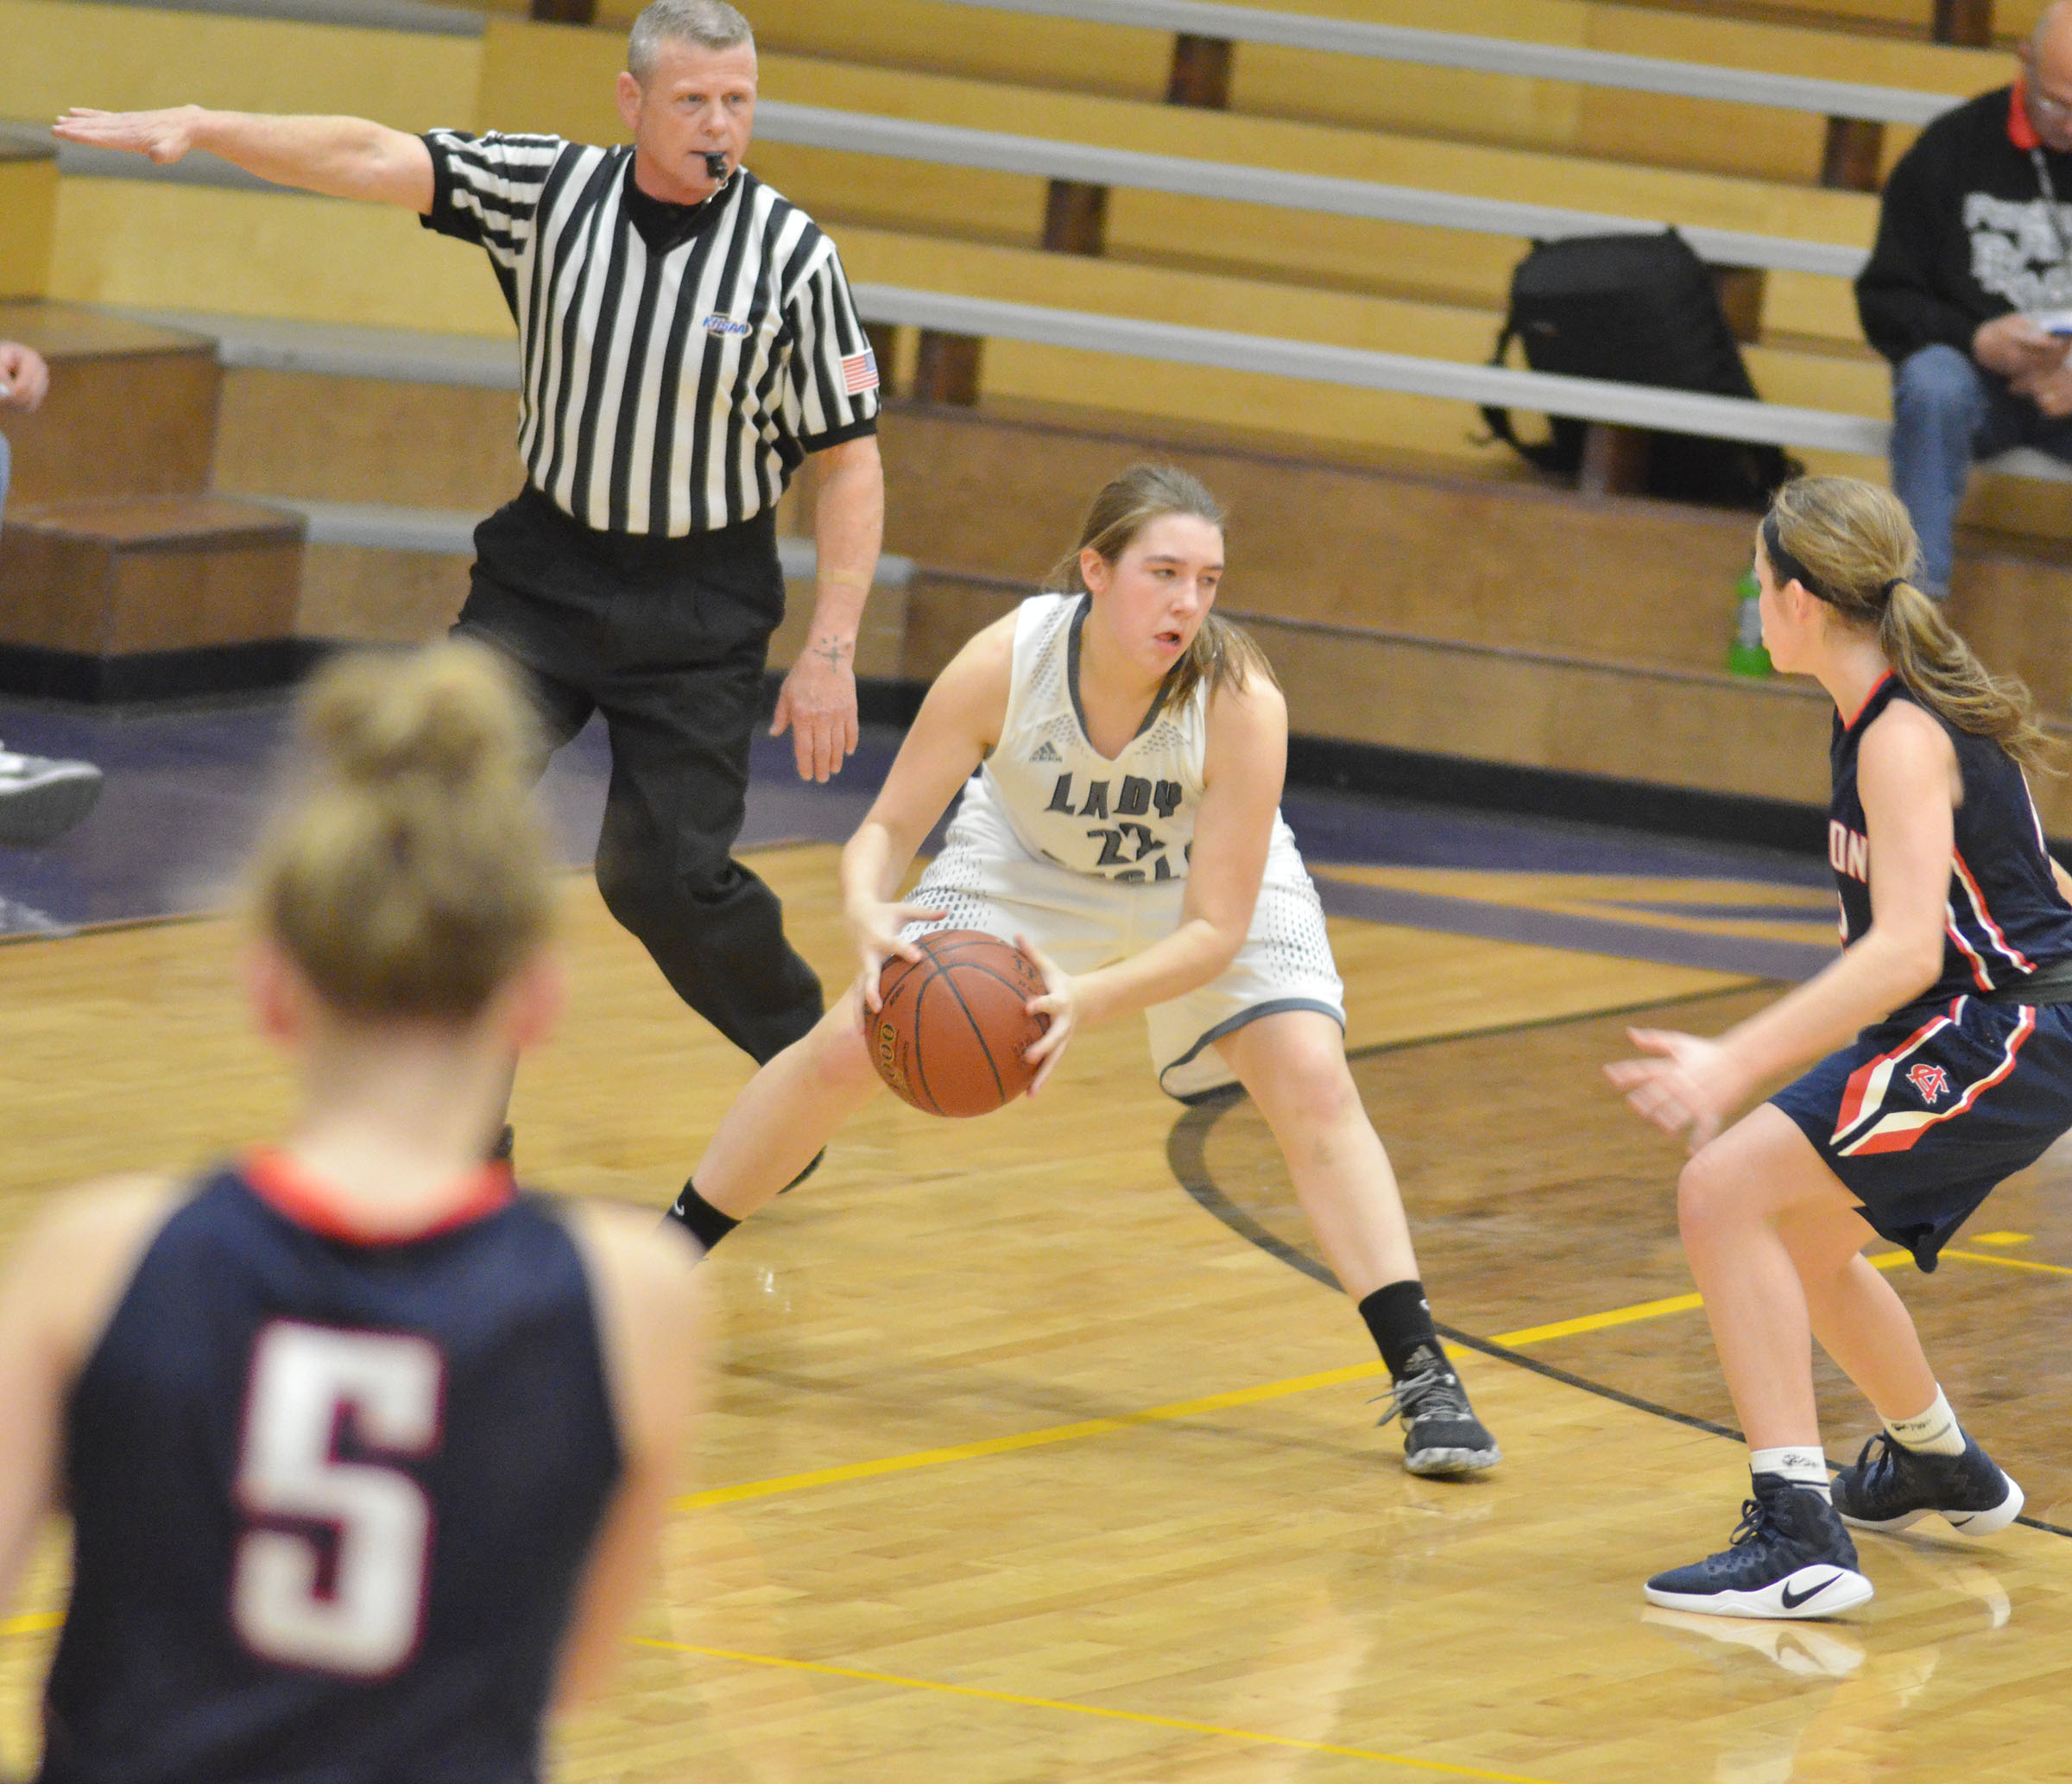 Campbellsville Middle School eighth-grader Abi Wiedewitsch dribbles.